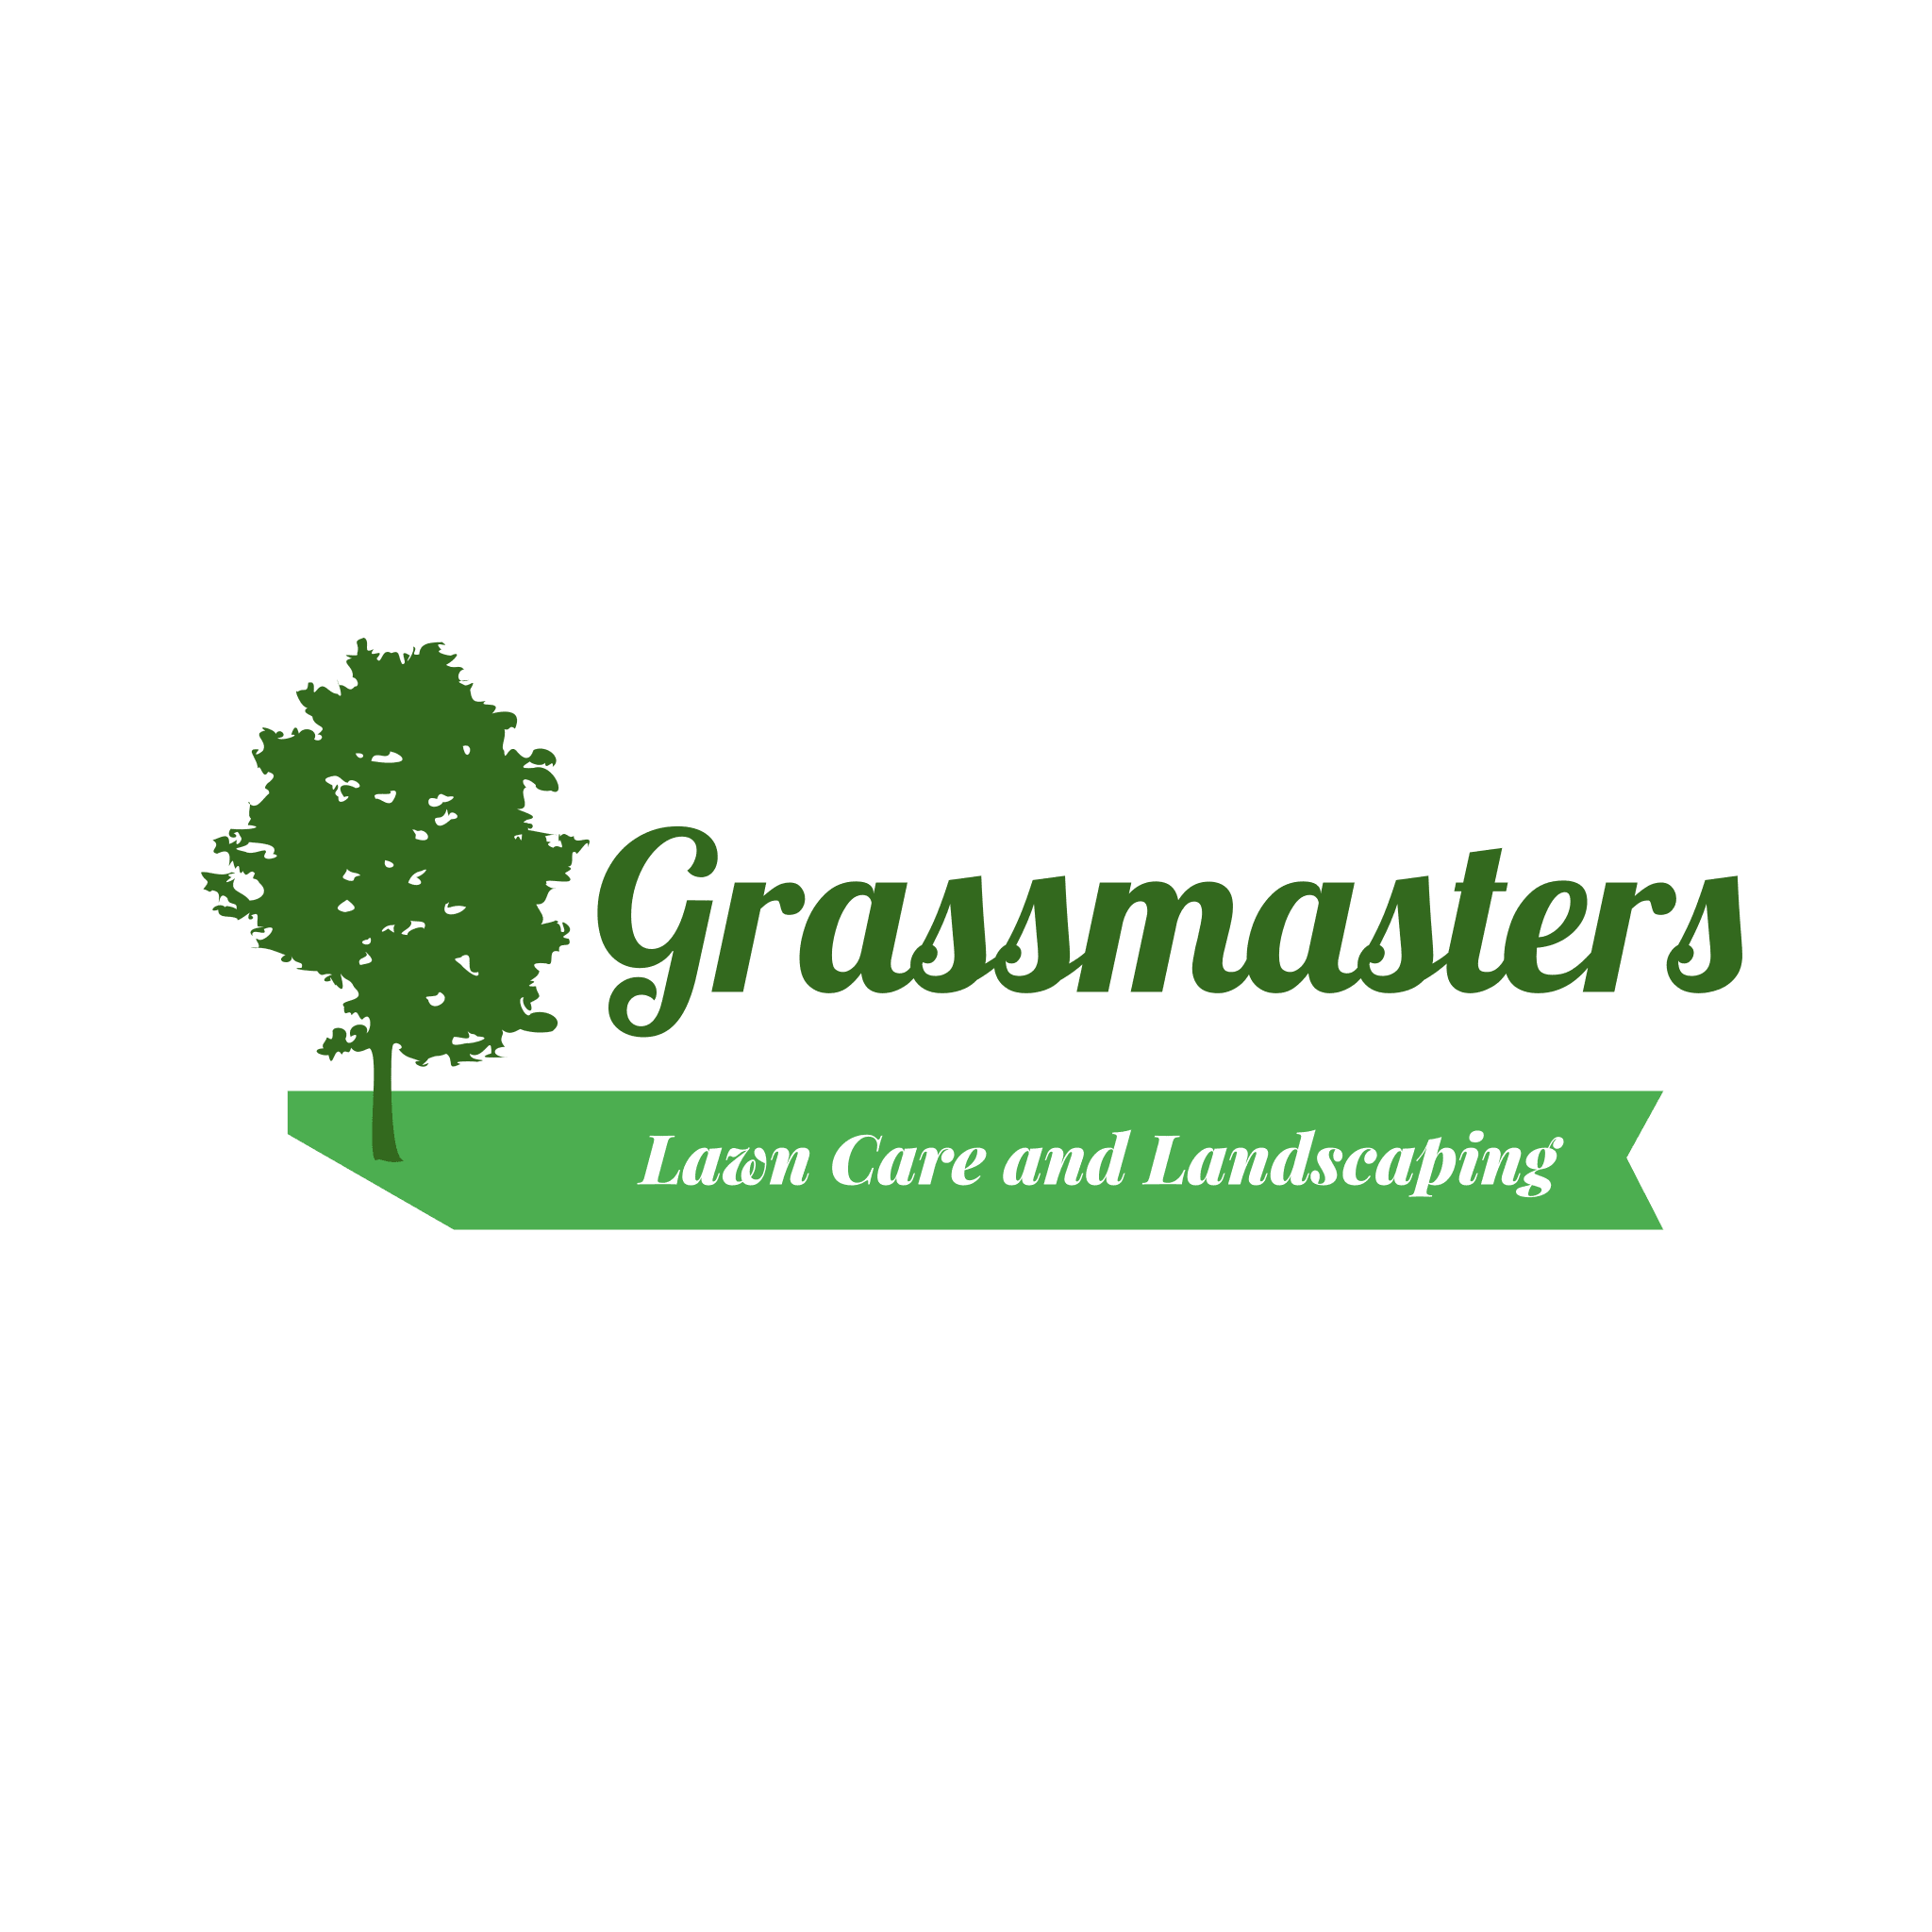 Grassmasters Lawn Care and Landscaping